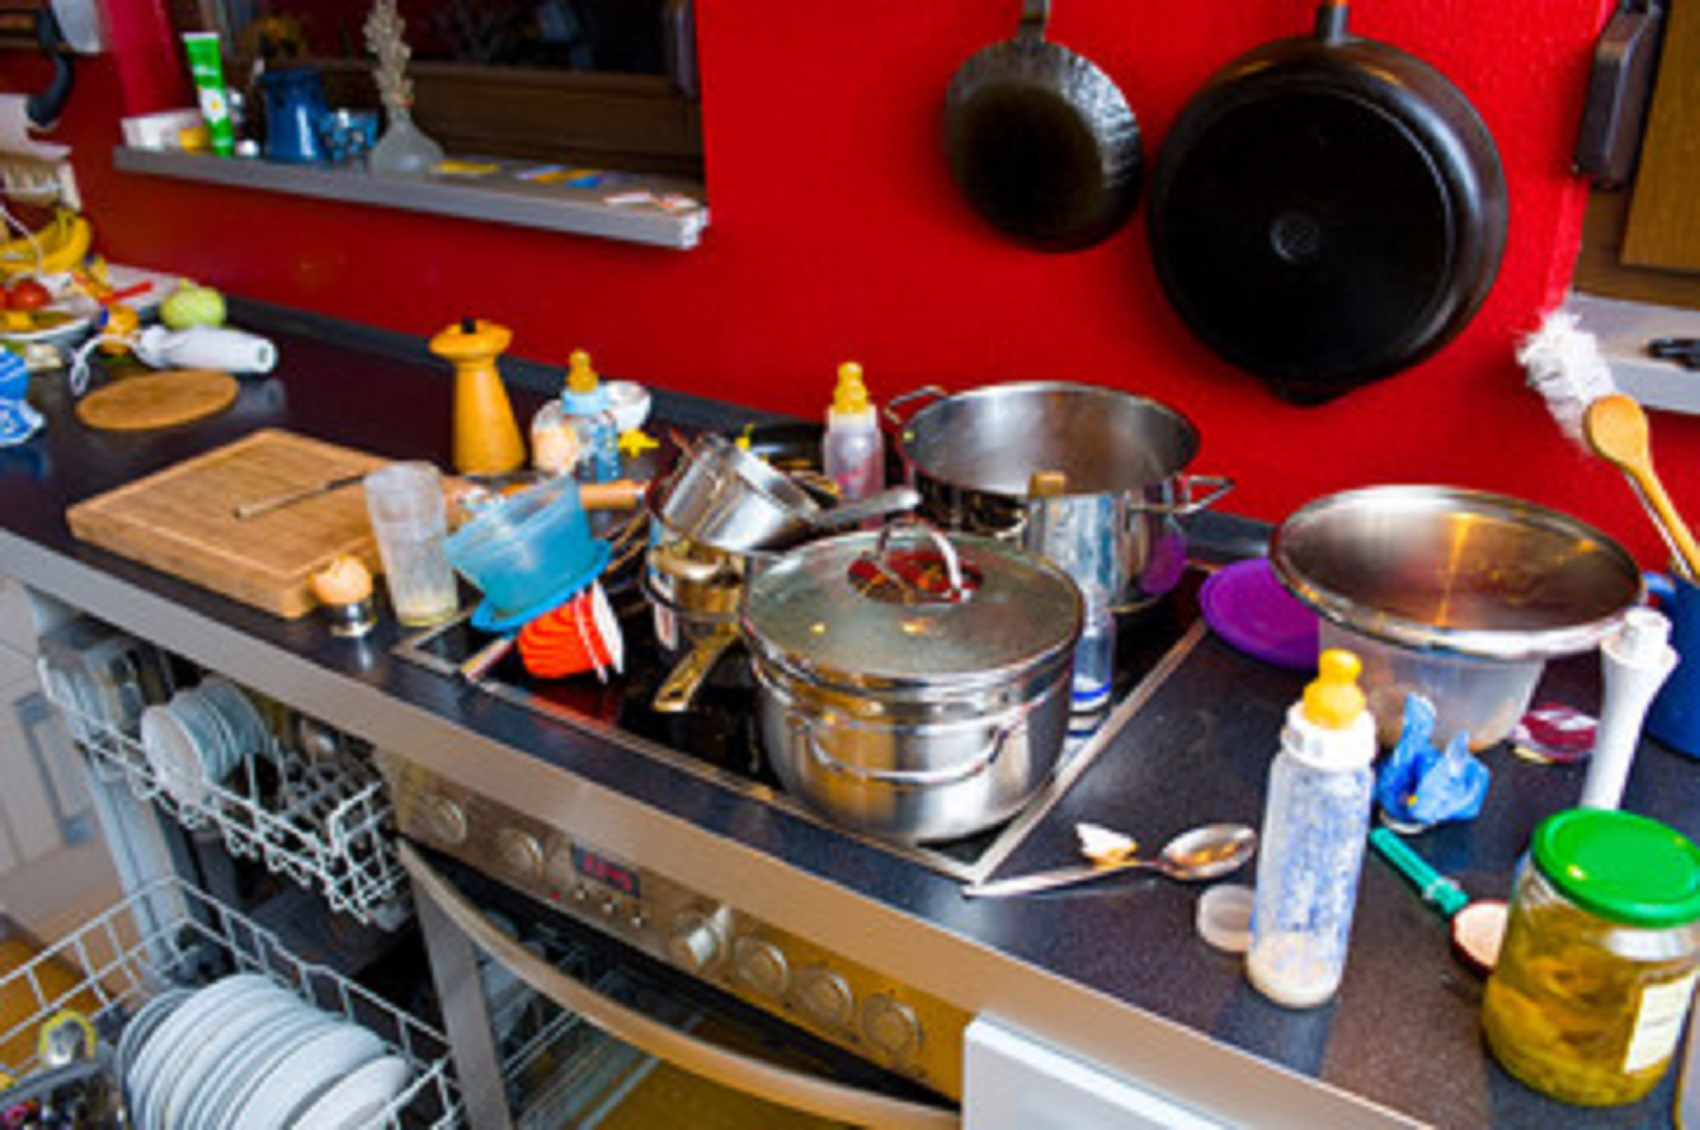 remove this kitchen clutter when you have a feng shui kitchen design